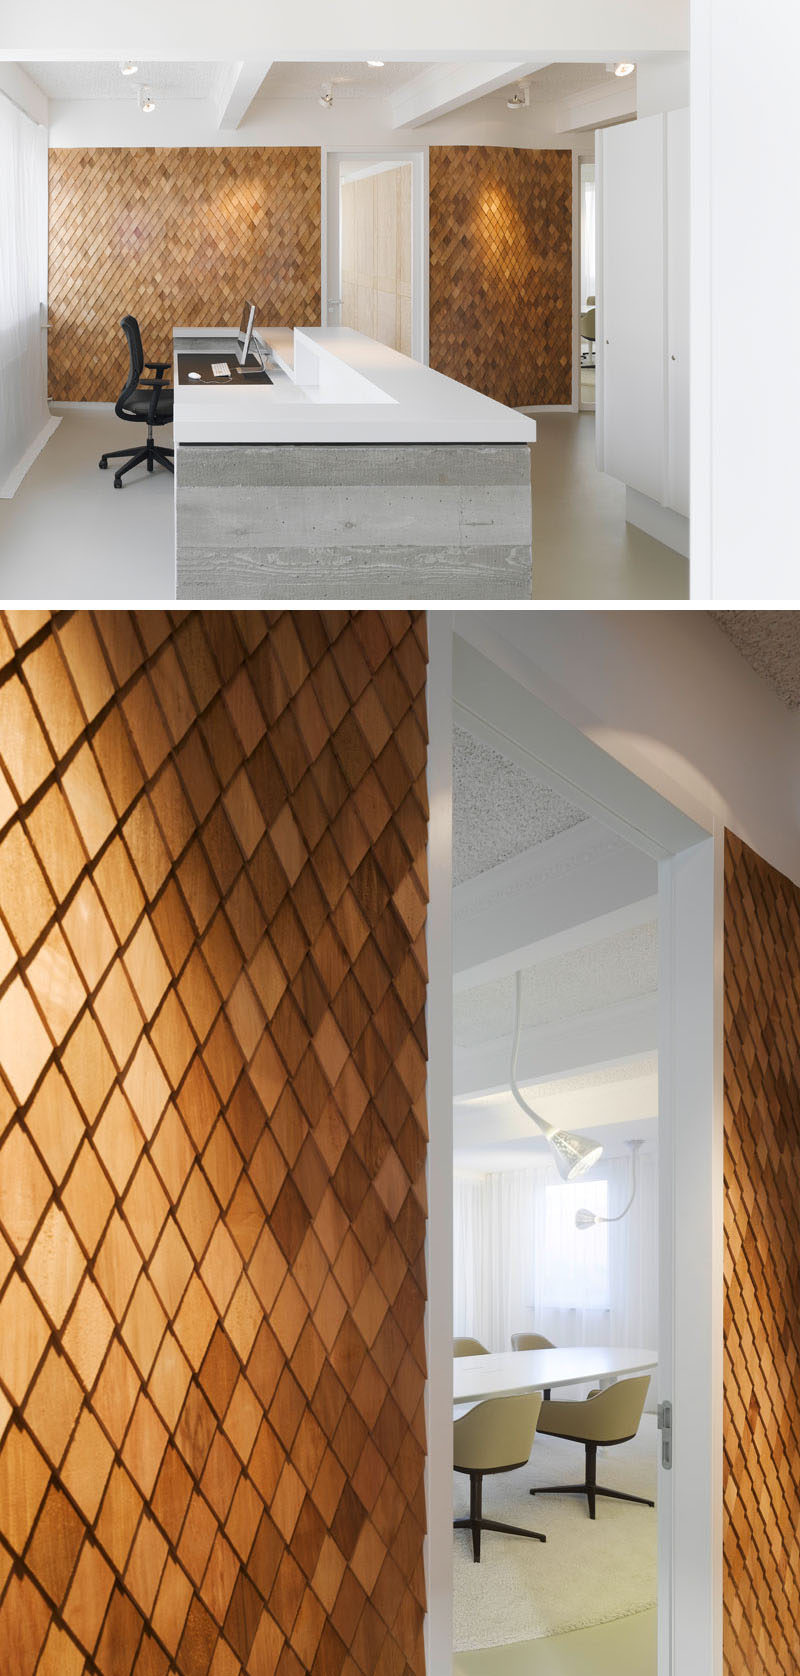 Wood Wall Cladding: Using Wood Shingles To Create An Accent Wall Adds Warmth